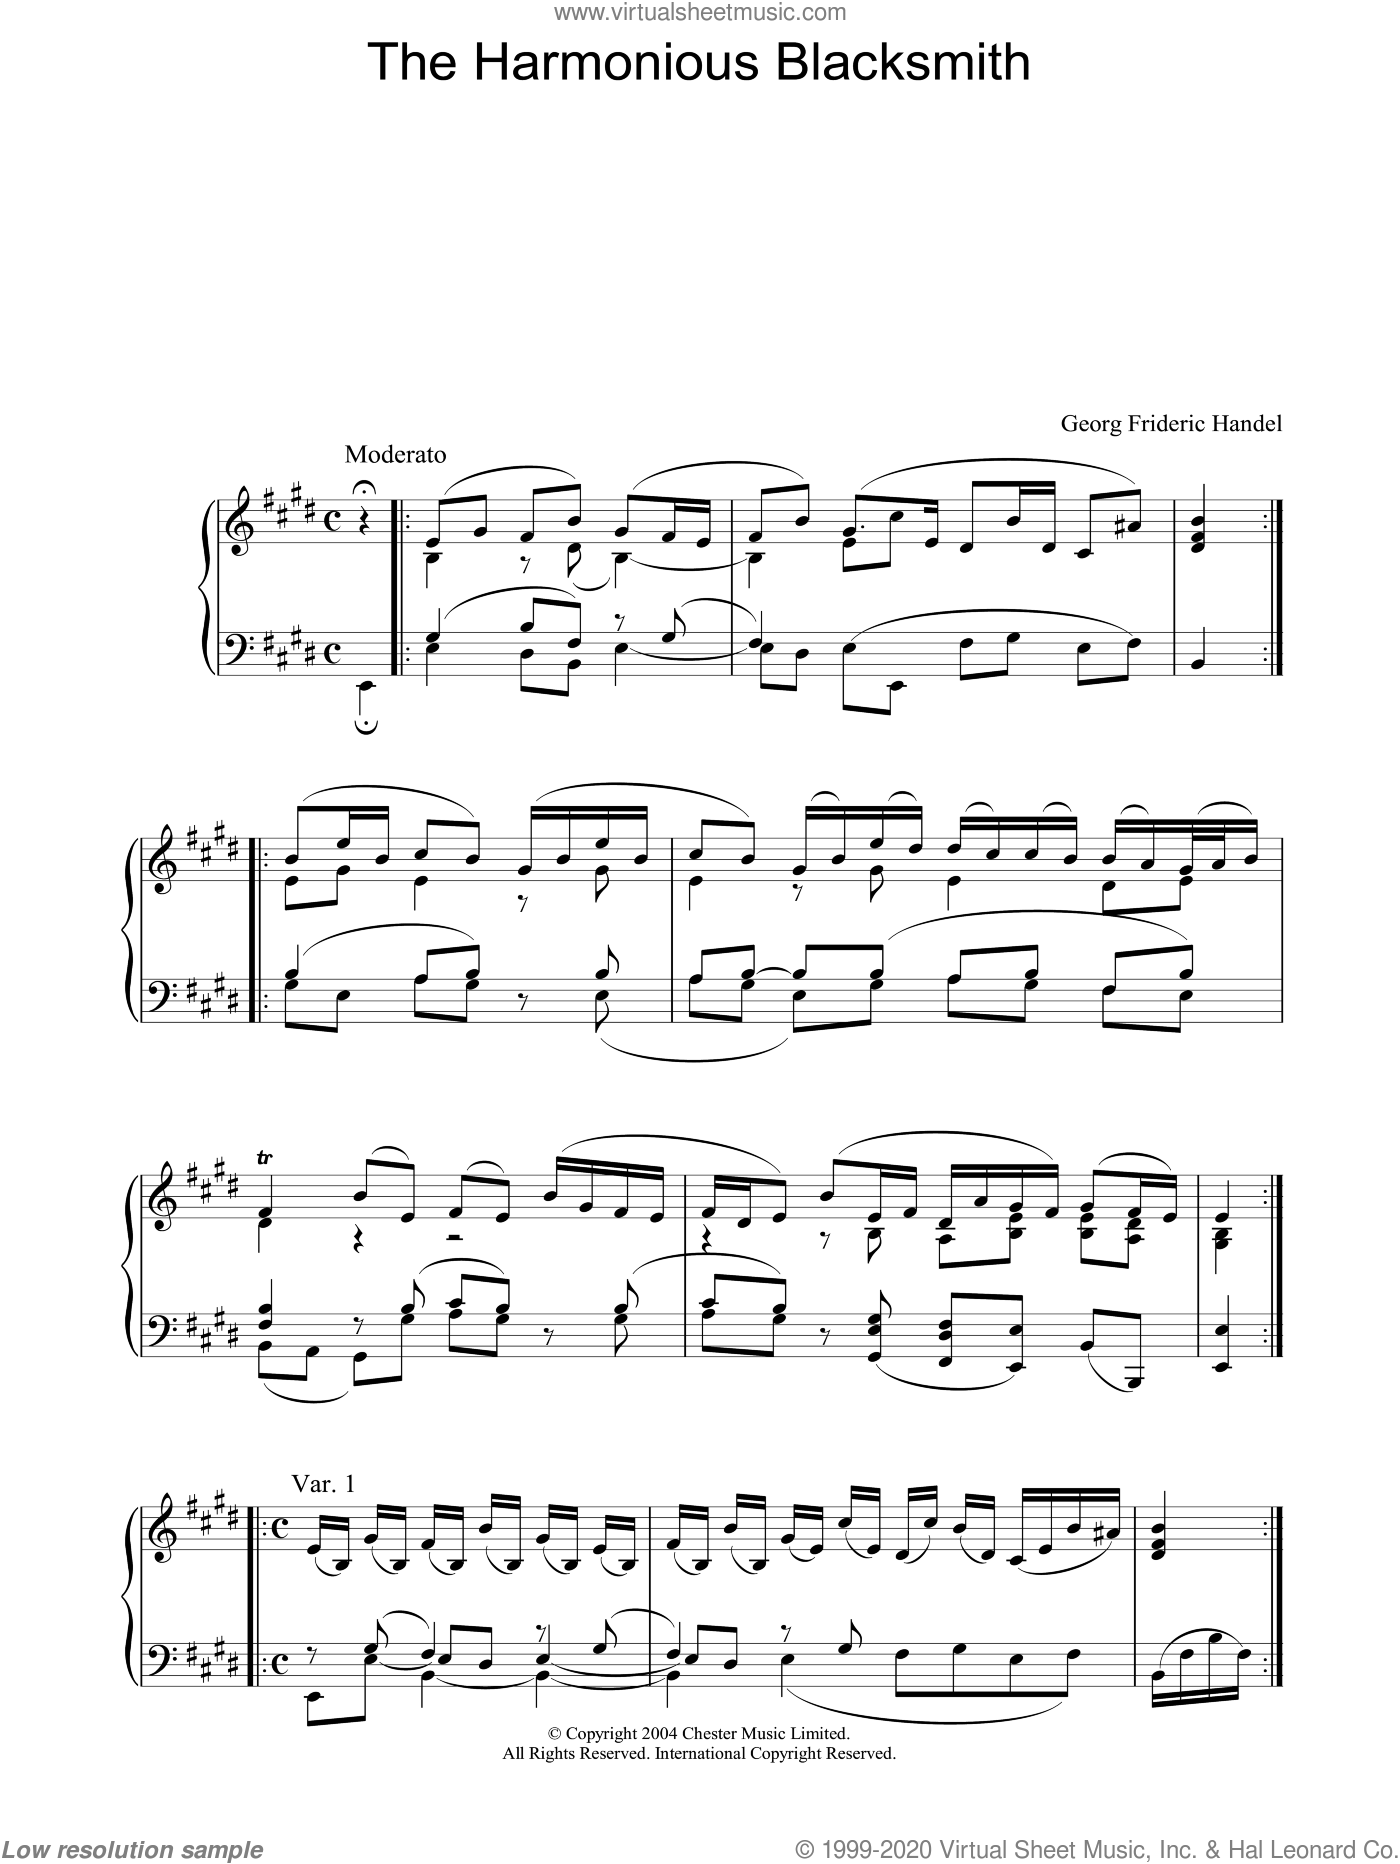 The Harmonious Blacksmith sheet music for piano solo by George Frideric Handel